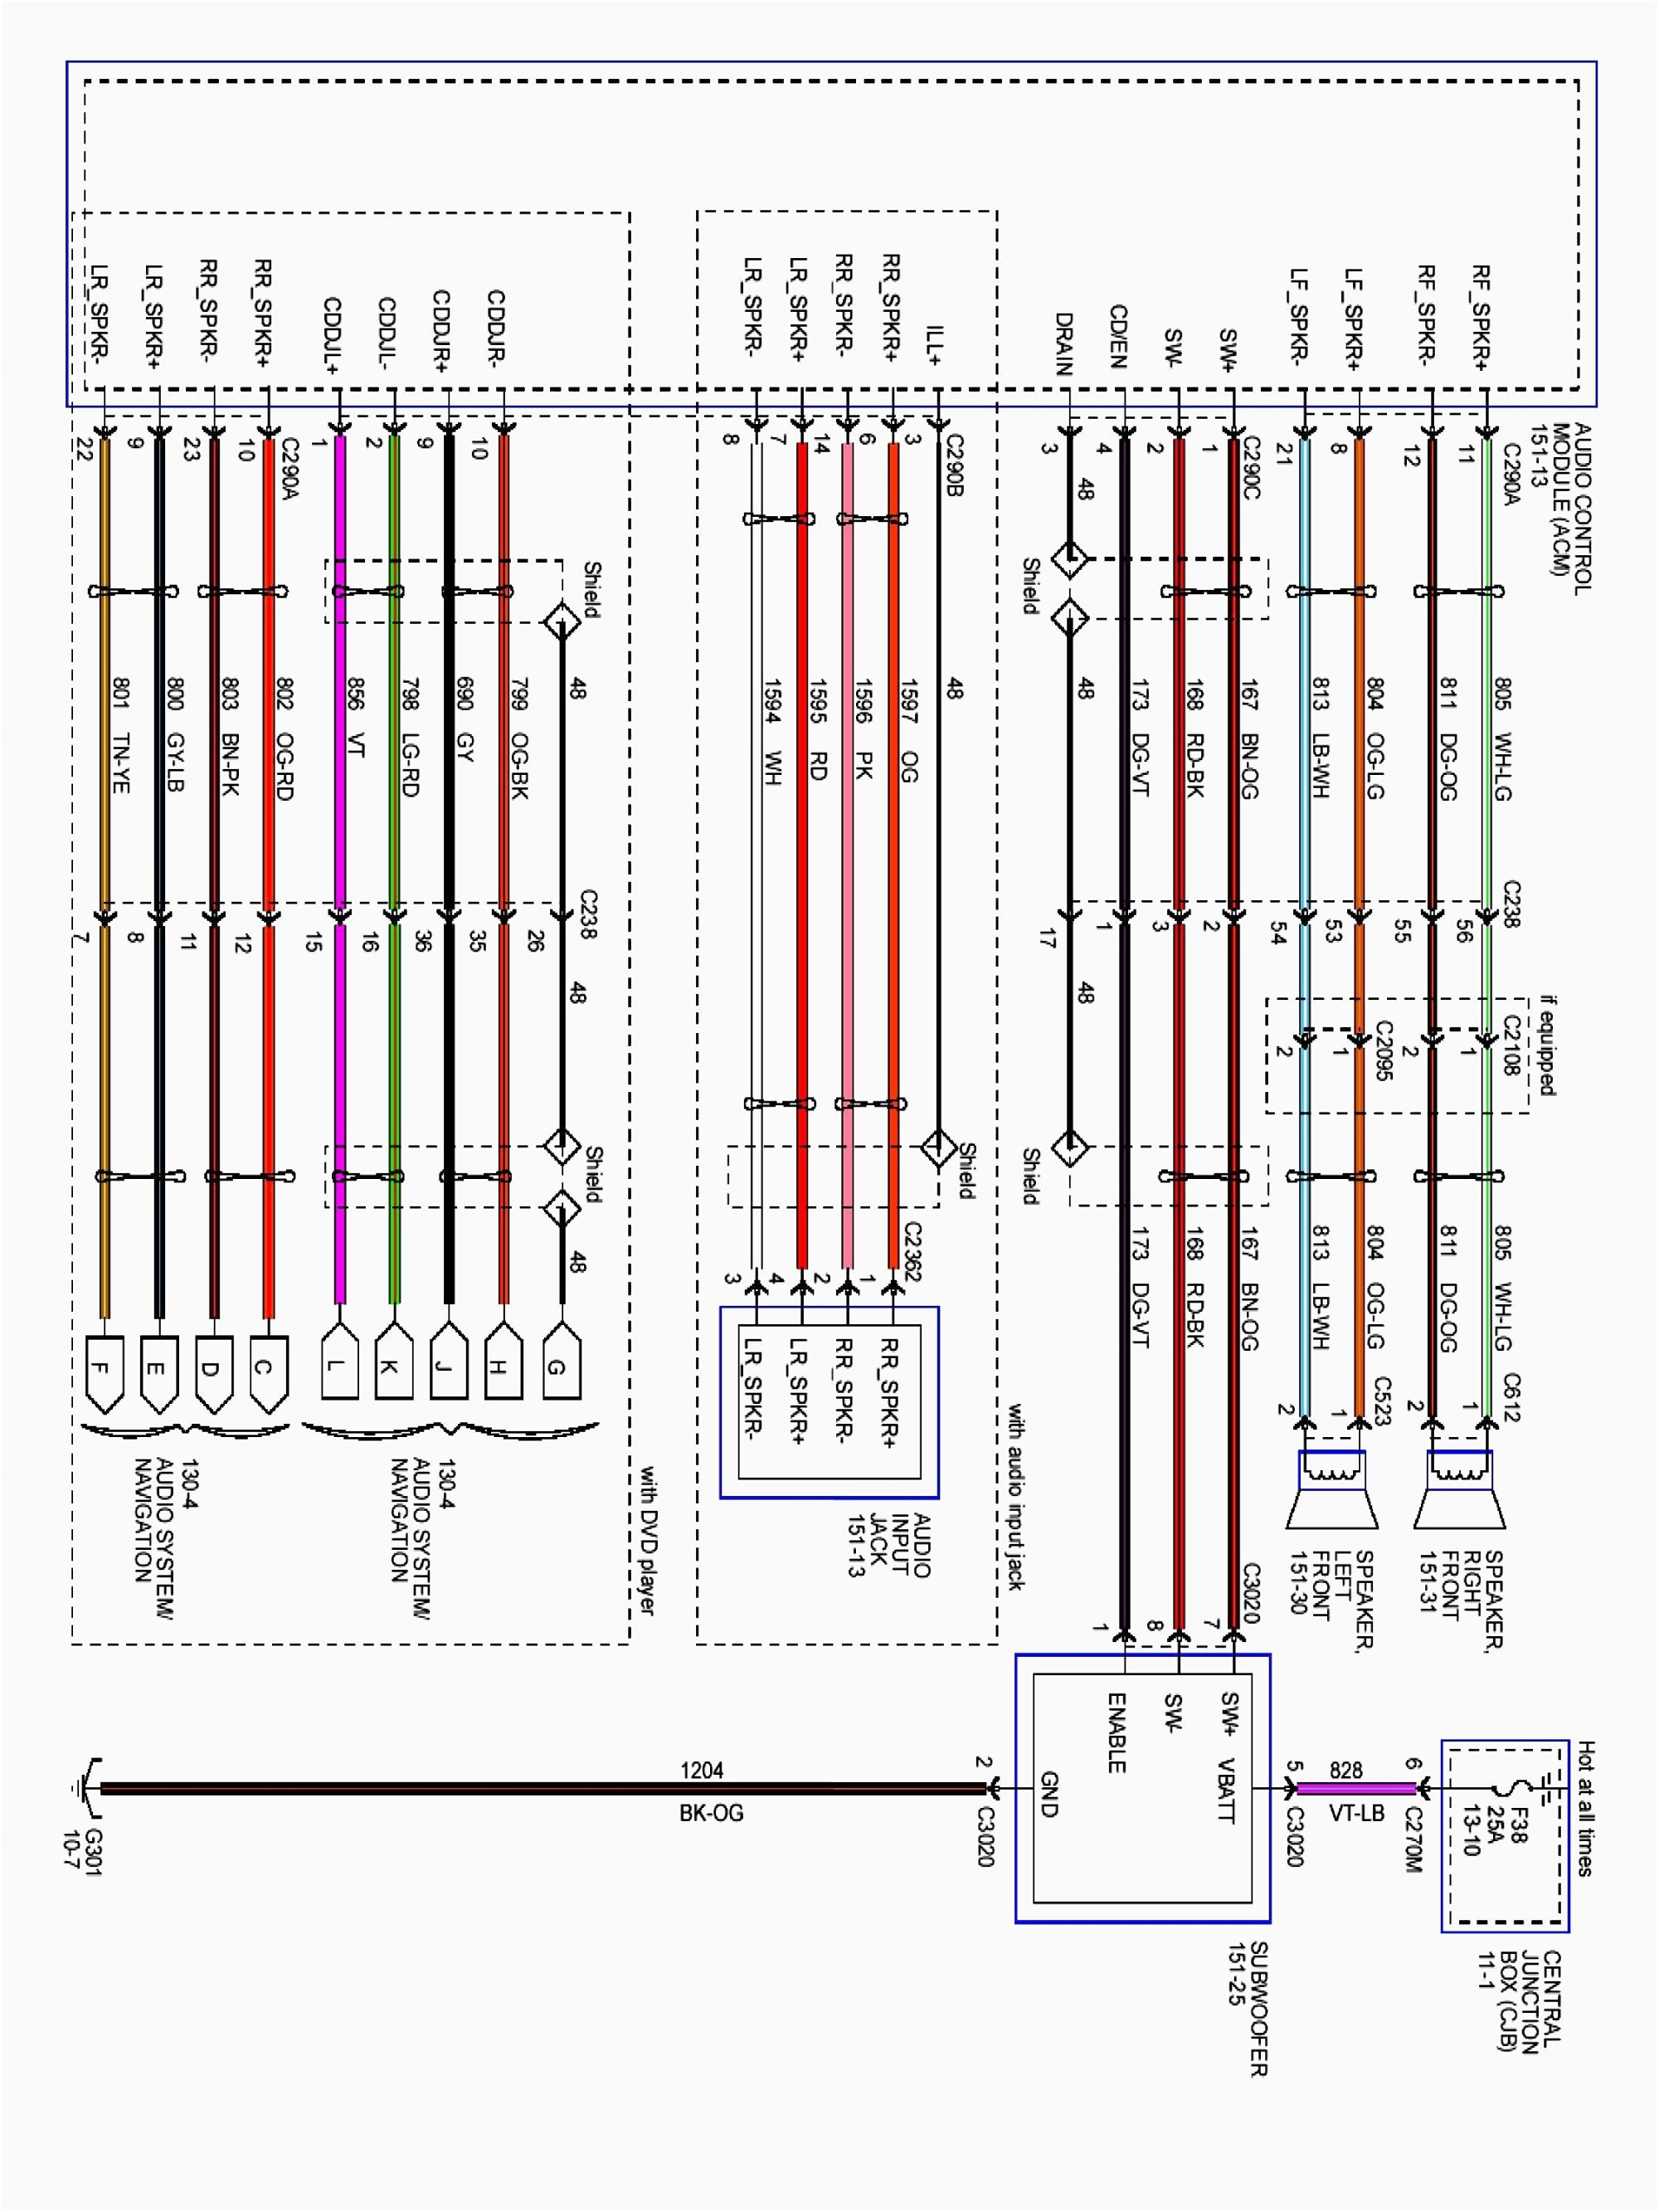 hight resolution of 2008 ford f 150 radio wire diagram wiring diagram world 2008 ford f150 lariat radio wiring